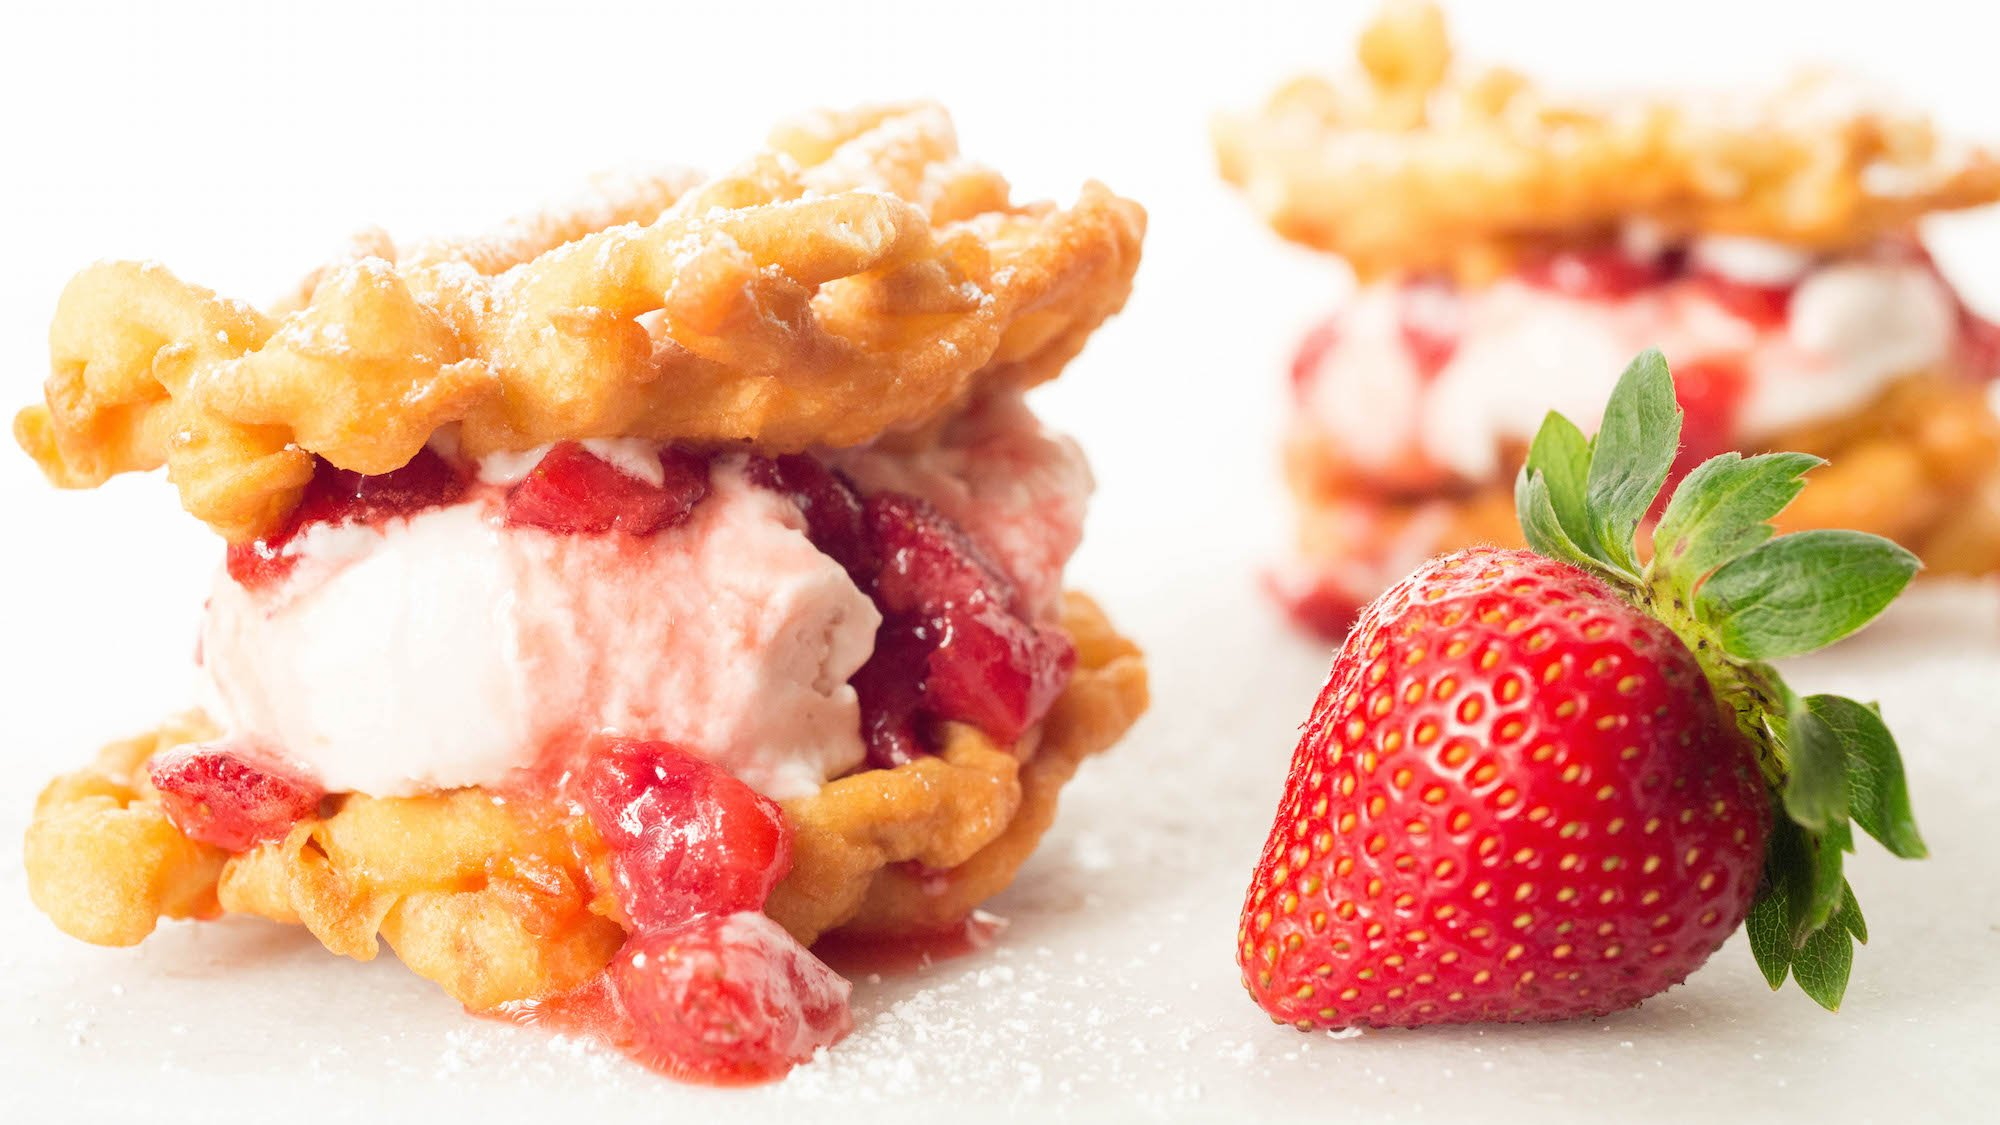 Homemade Funnel Cake Ice Cream Sandwiches with Roasted Strawberry Buttermilk Ice Cream and fresh Strawberry Syrup